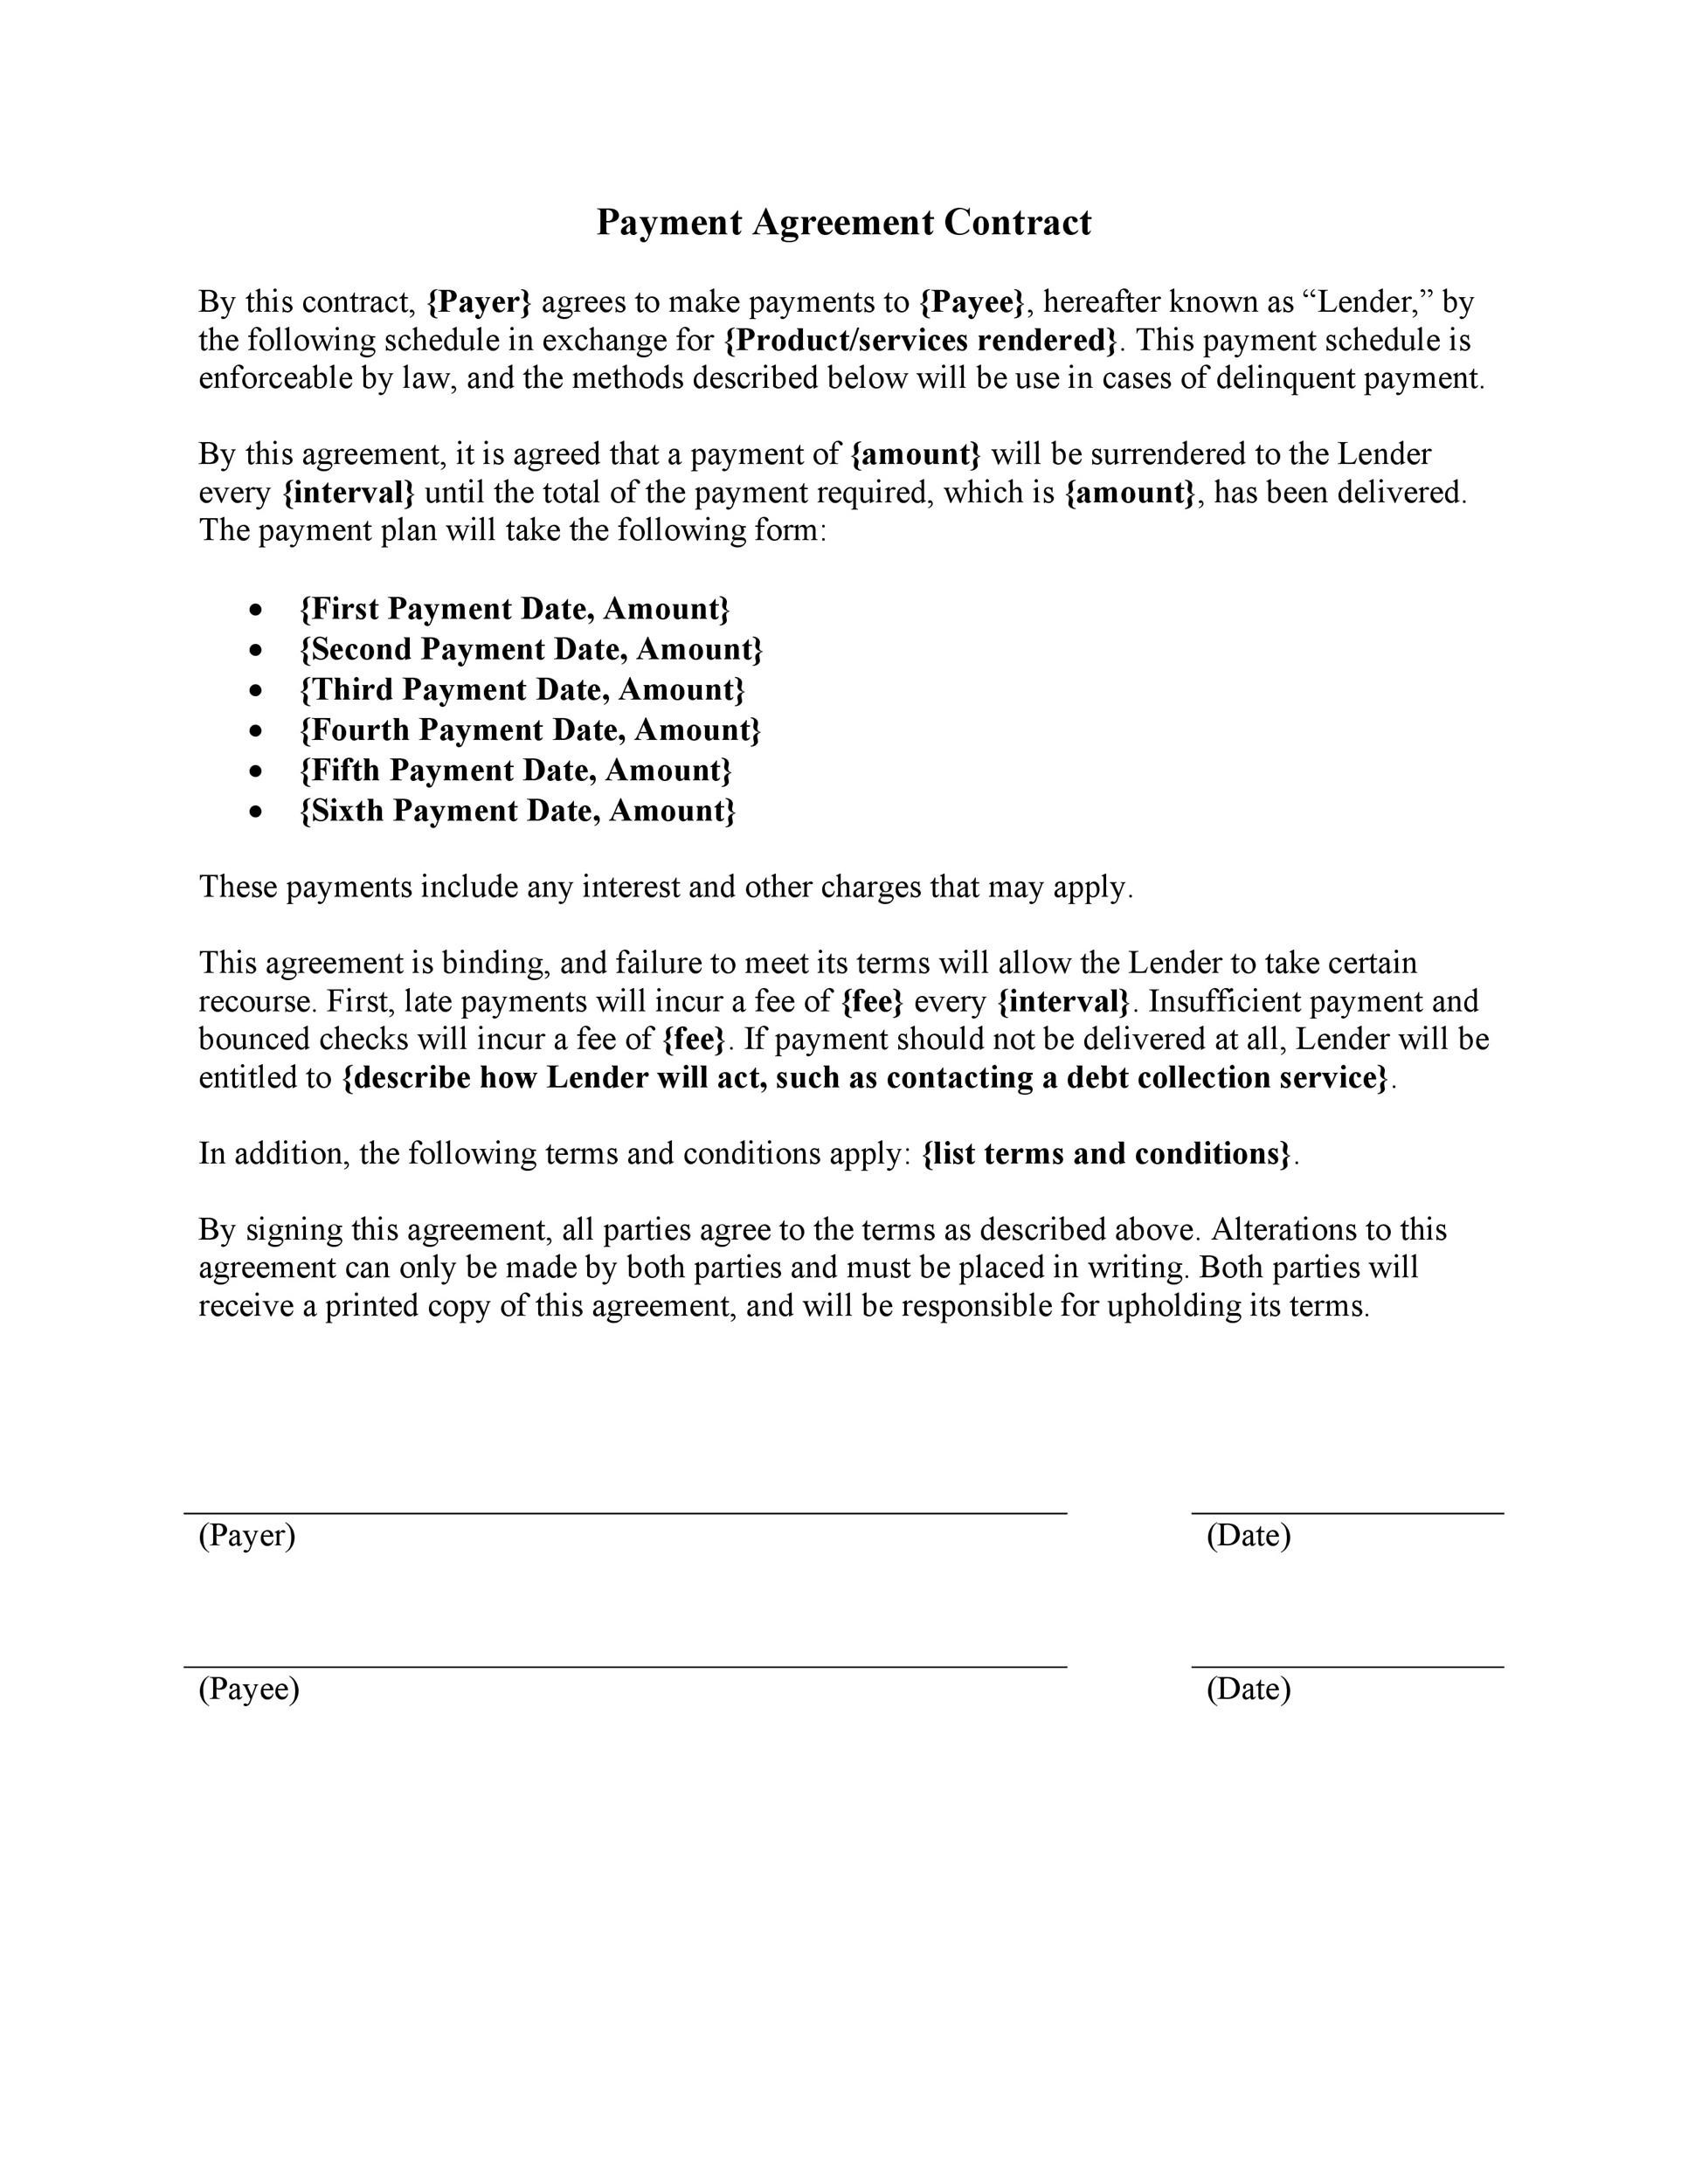 wage agreement template - payment agreement 40 templates contracts template lab